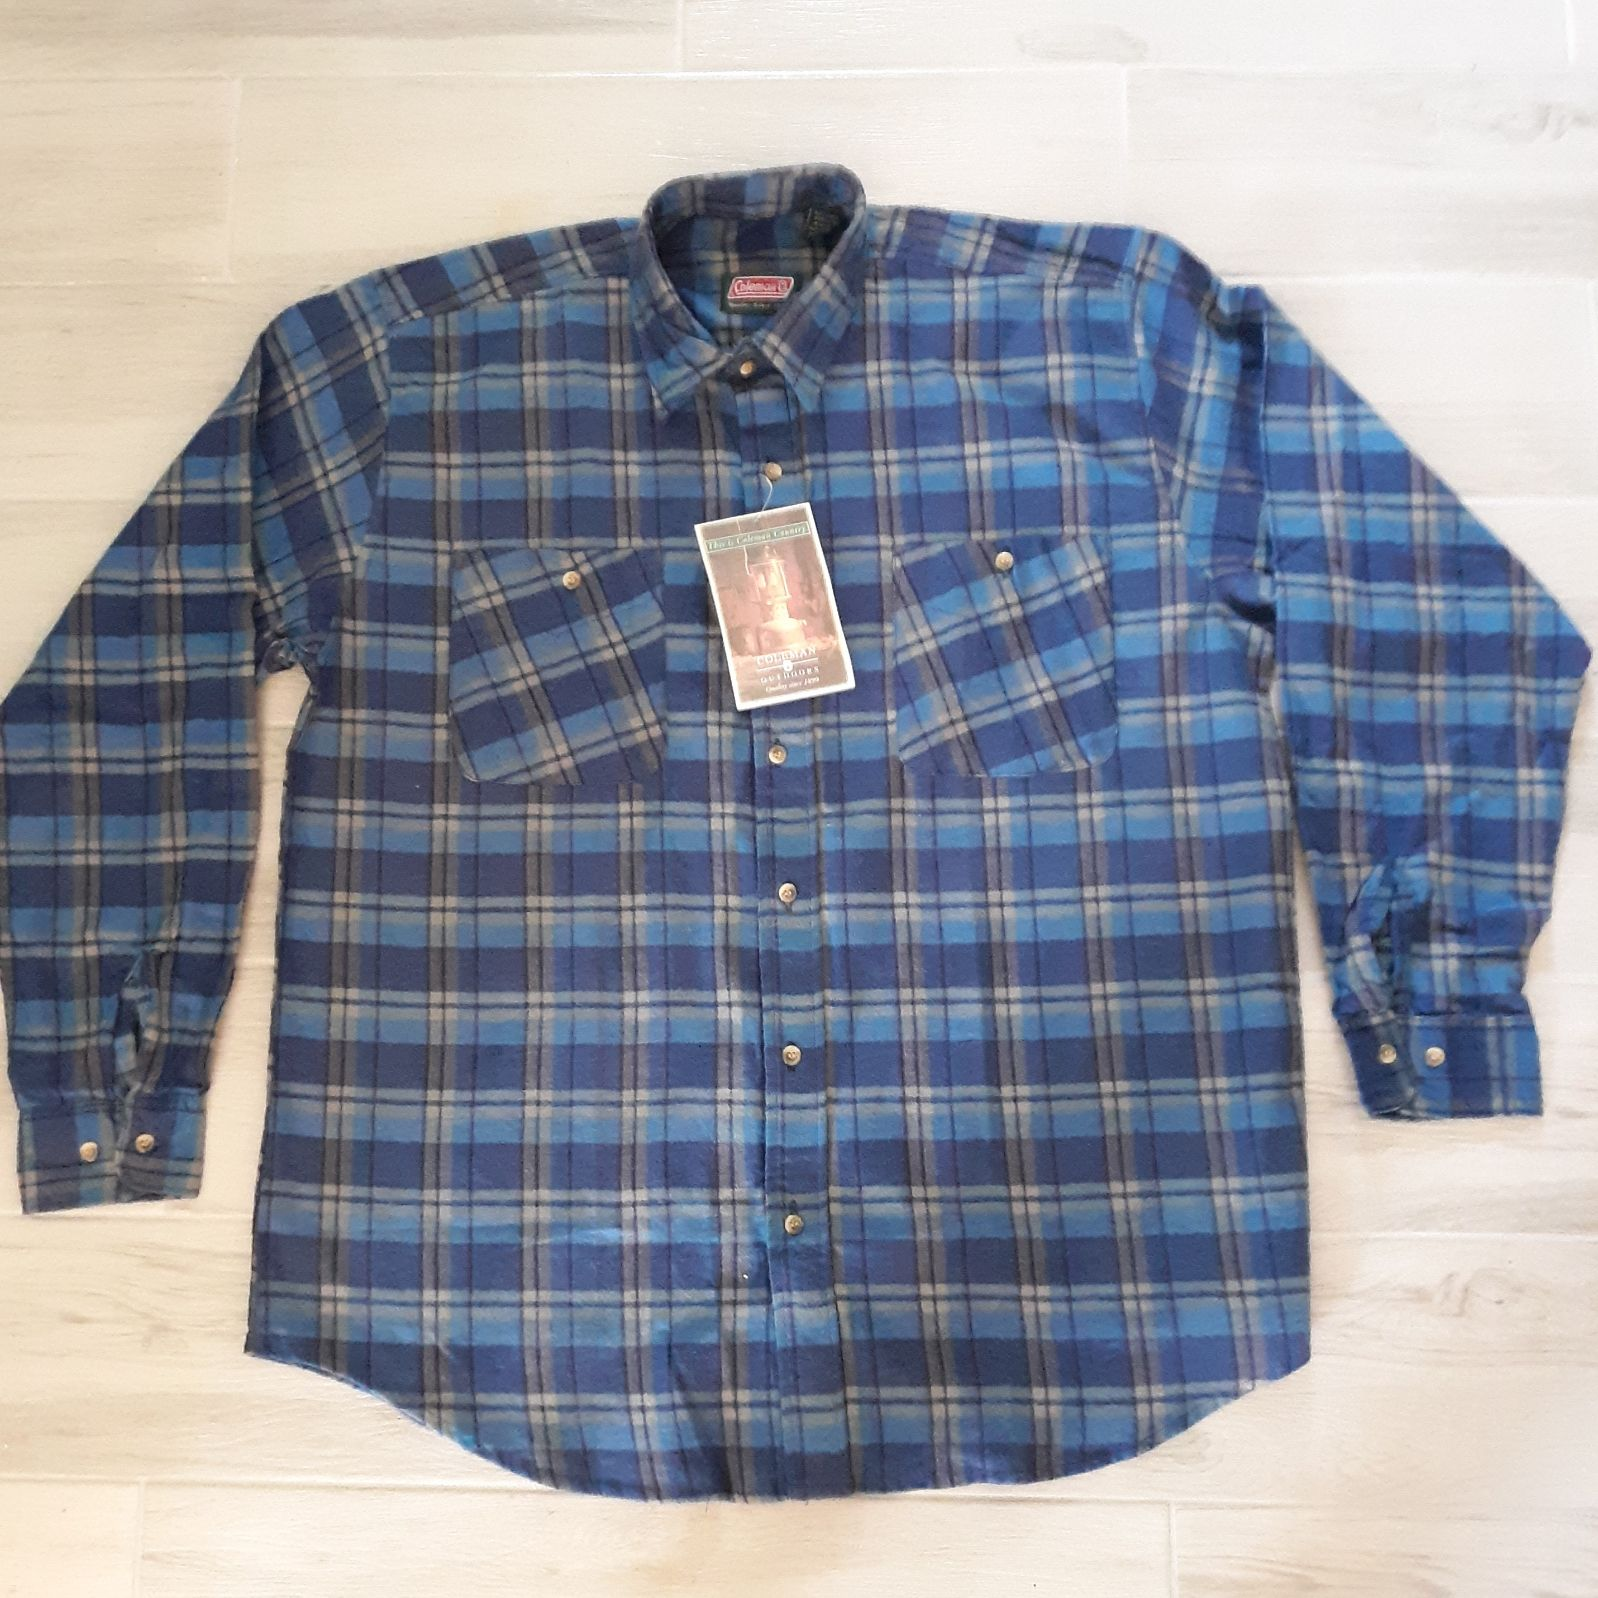 VTG Coleman Outdoors Flannel Shirt NOS B